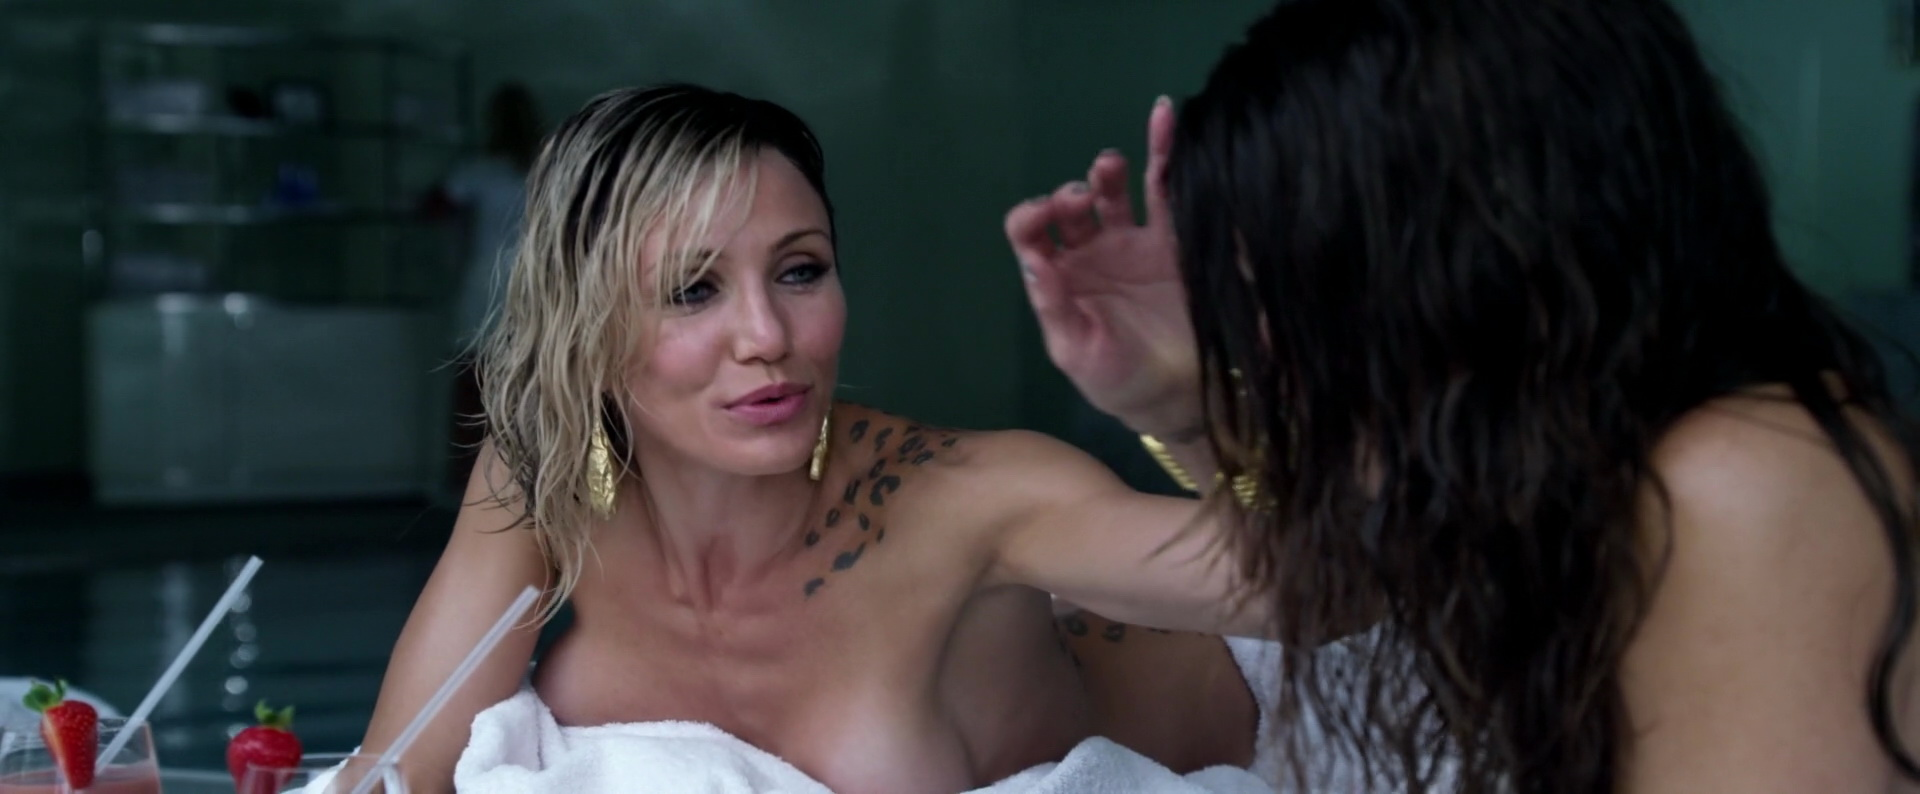 Cameron Diaz – The Counselor (2013) HD 1080p